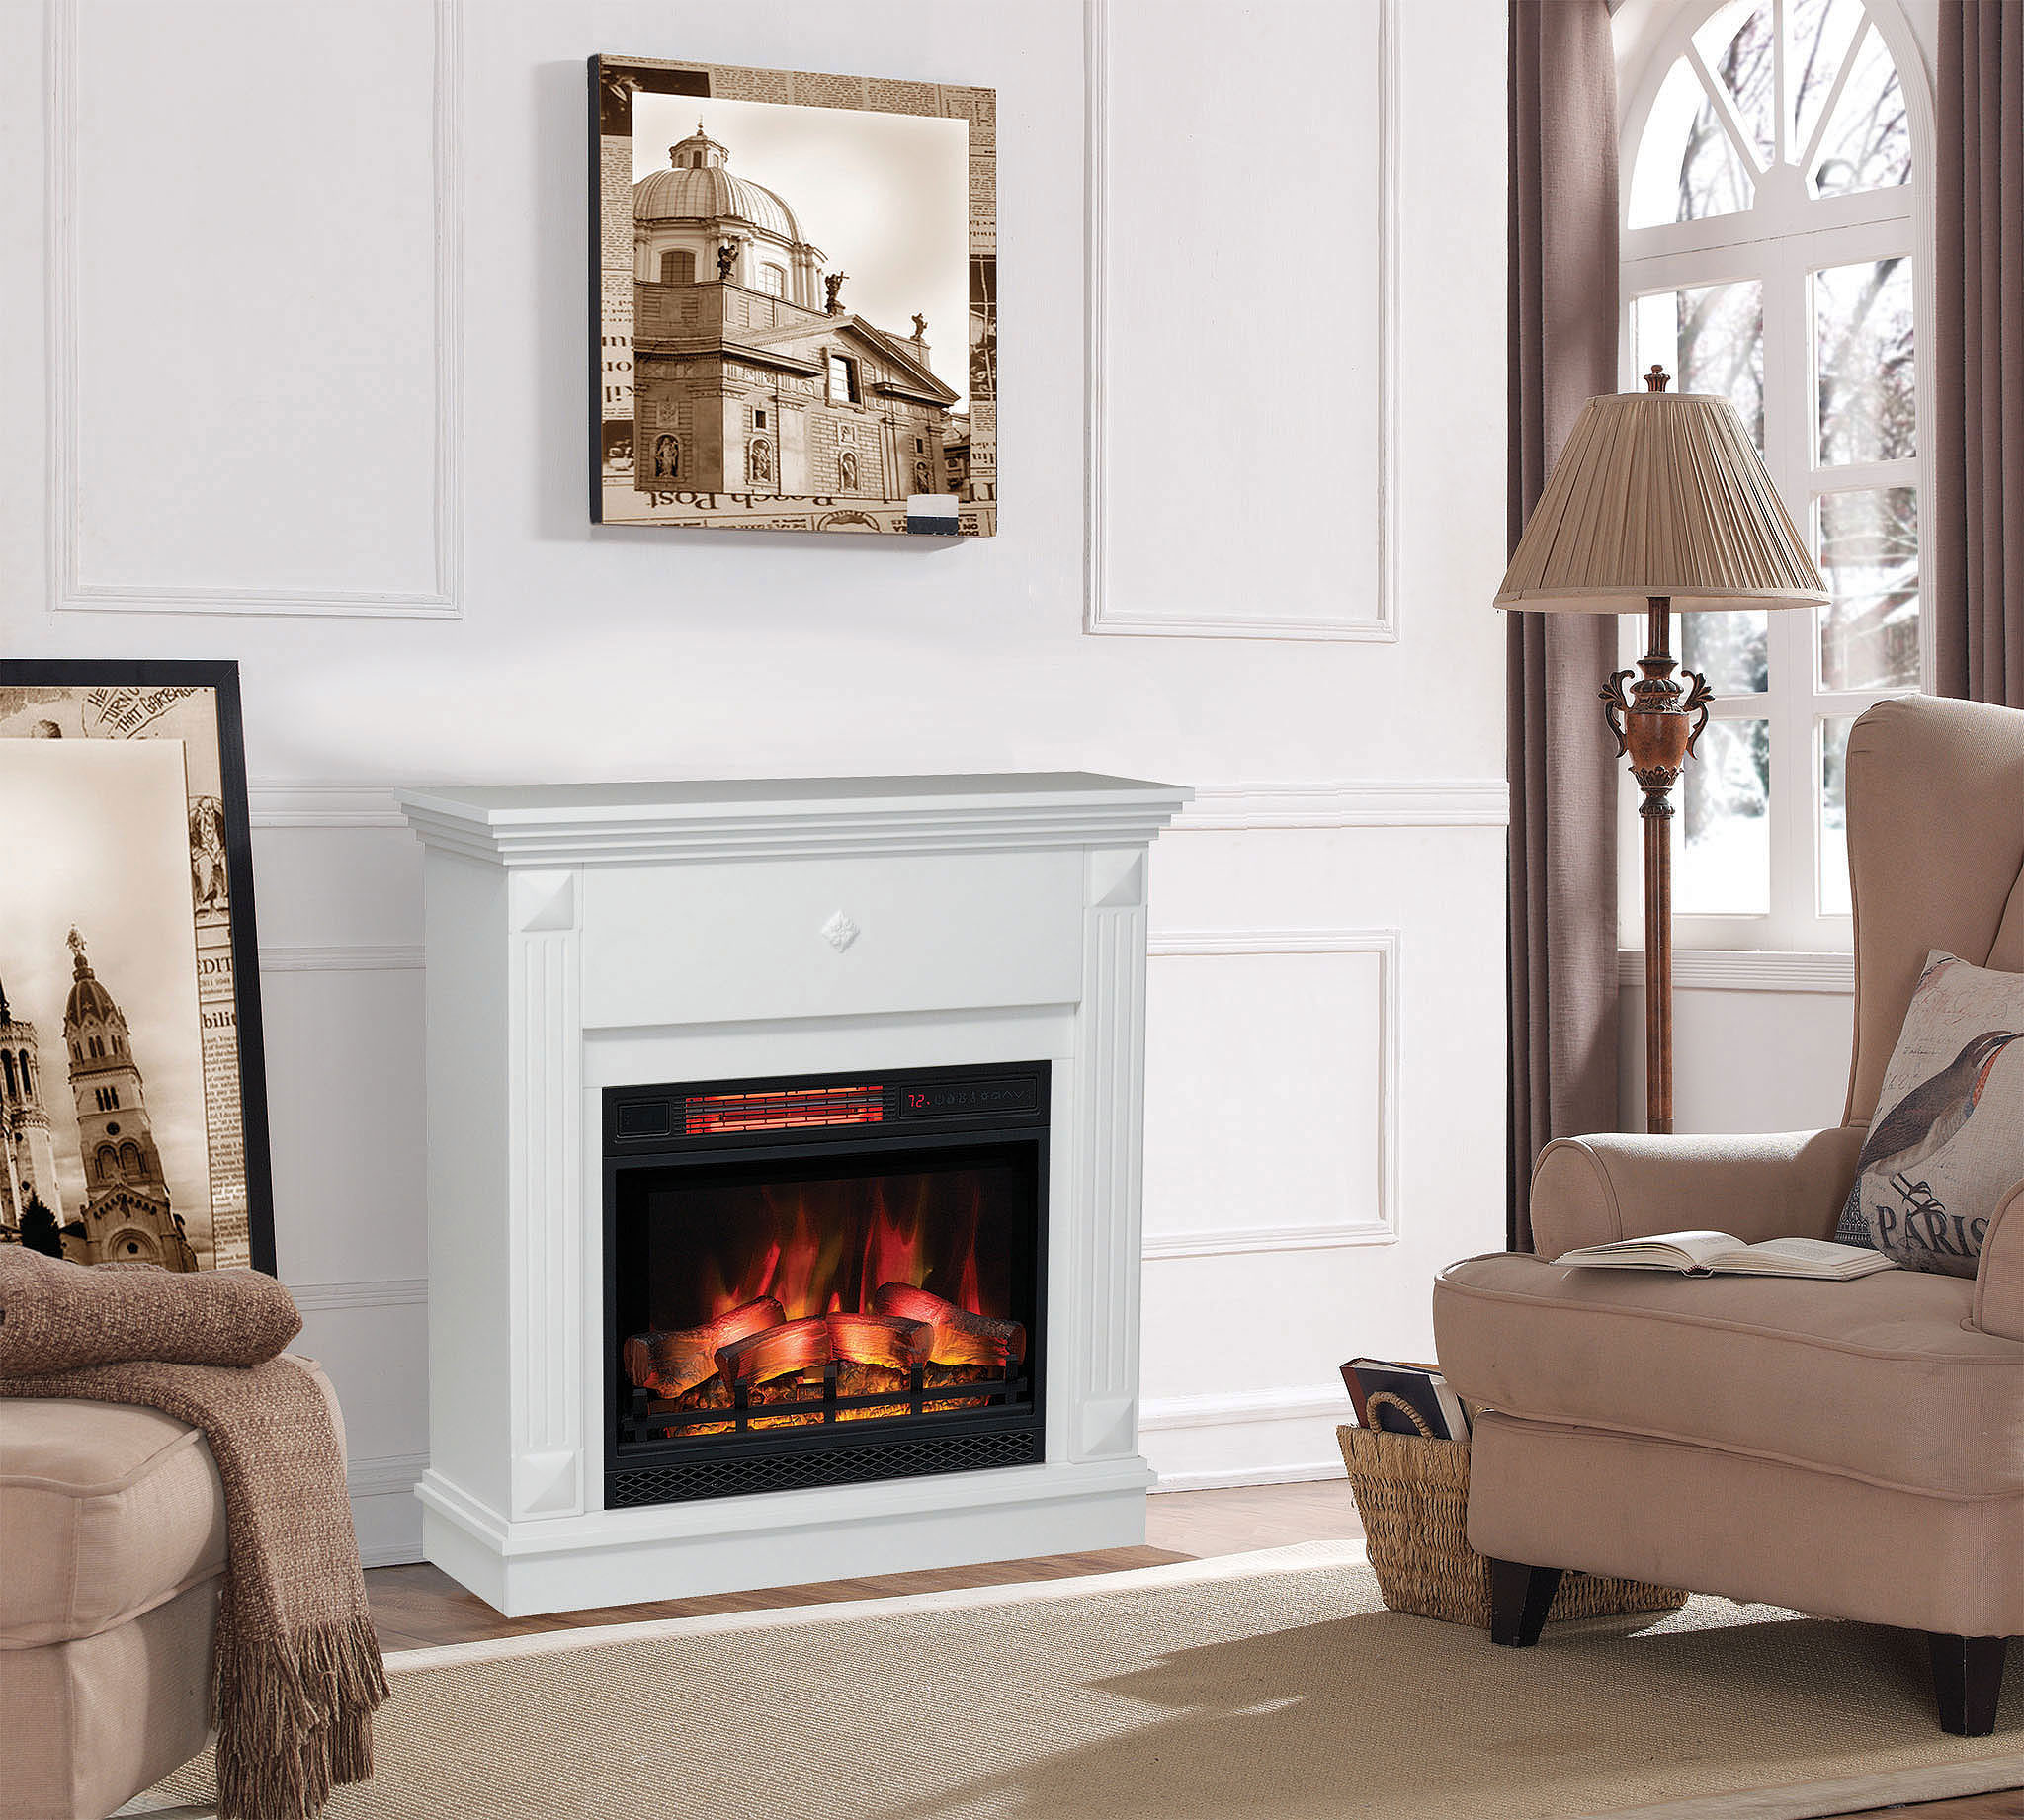 Electric fireplace Classic Flame Ralo • Artflame.com